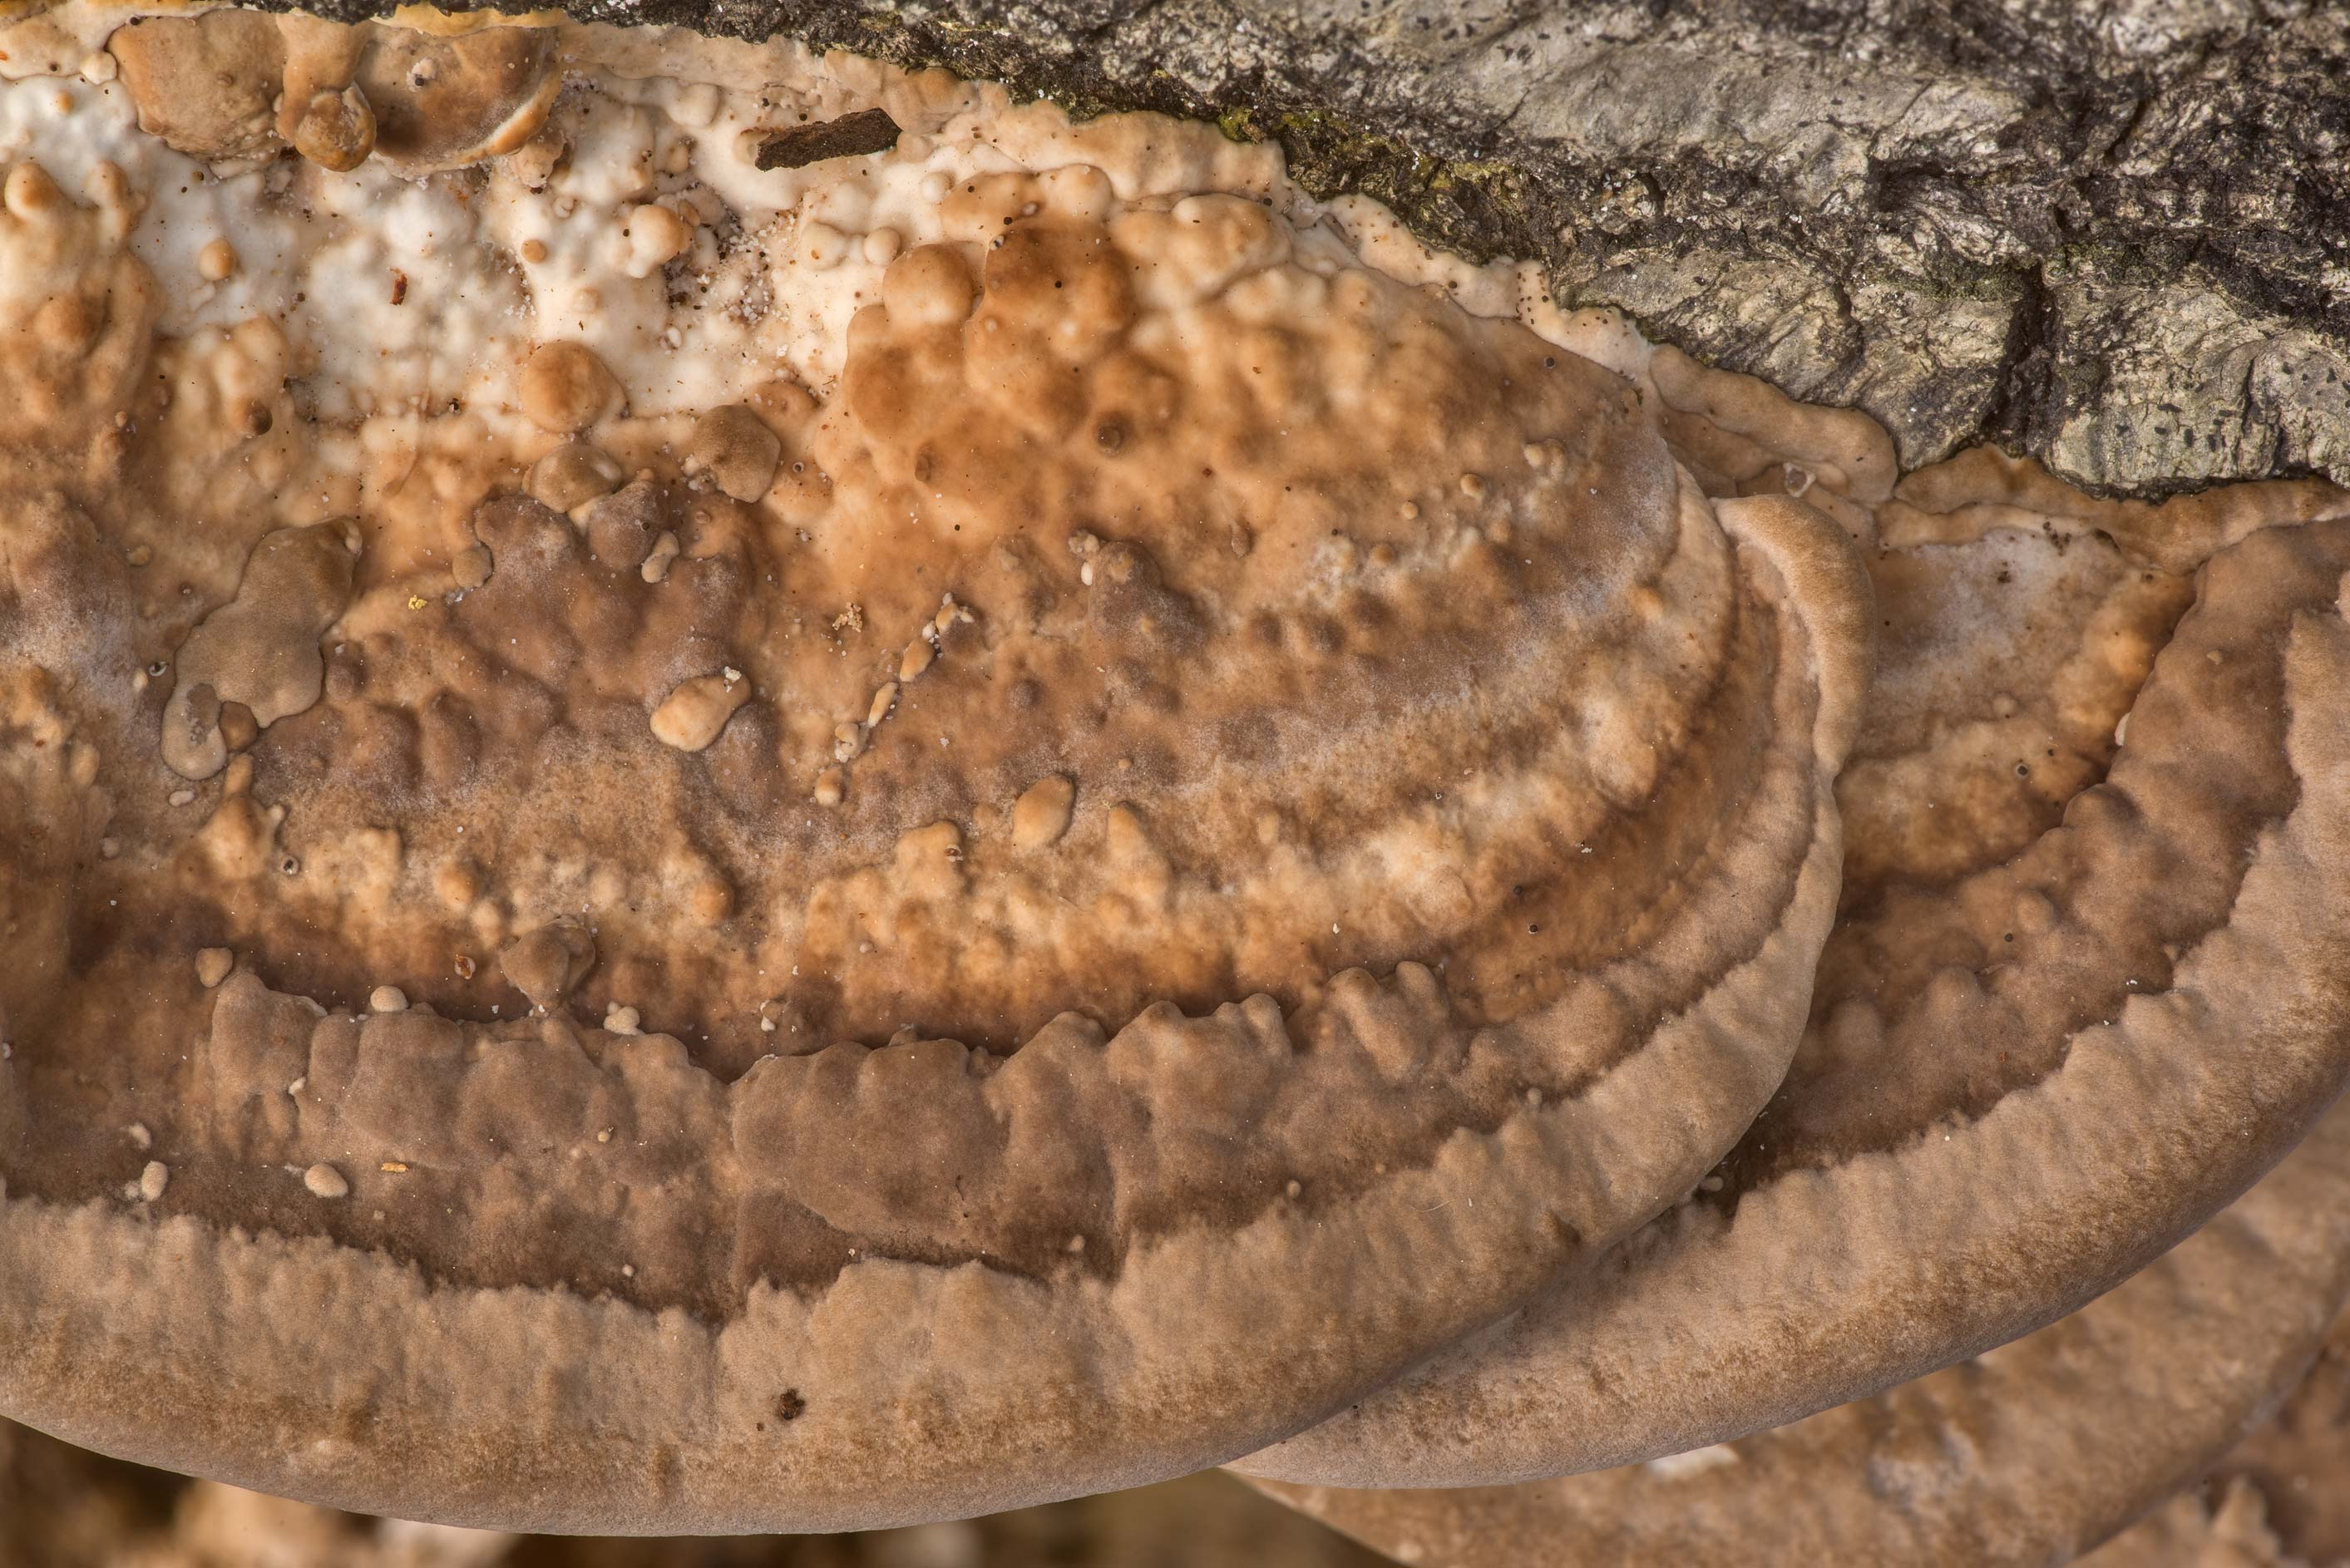 Cap texture of timber mushrooms Leiotrametes...National Forest near Huntsville. Texas